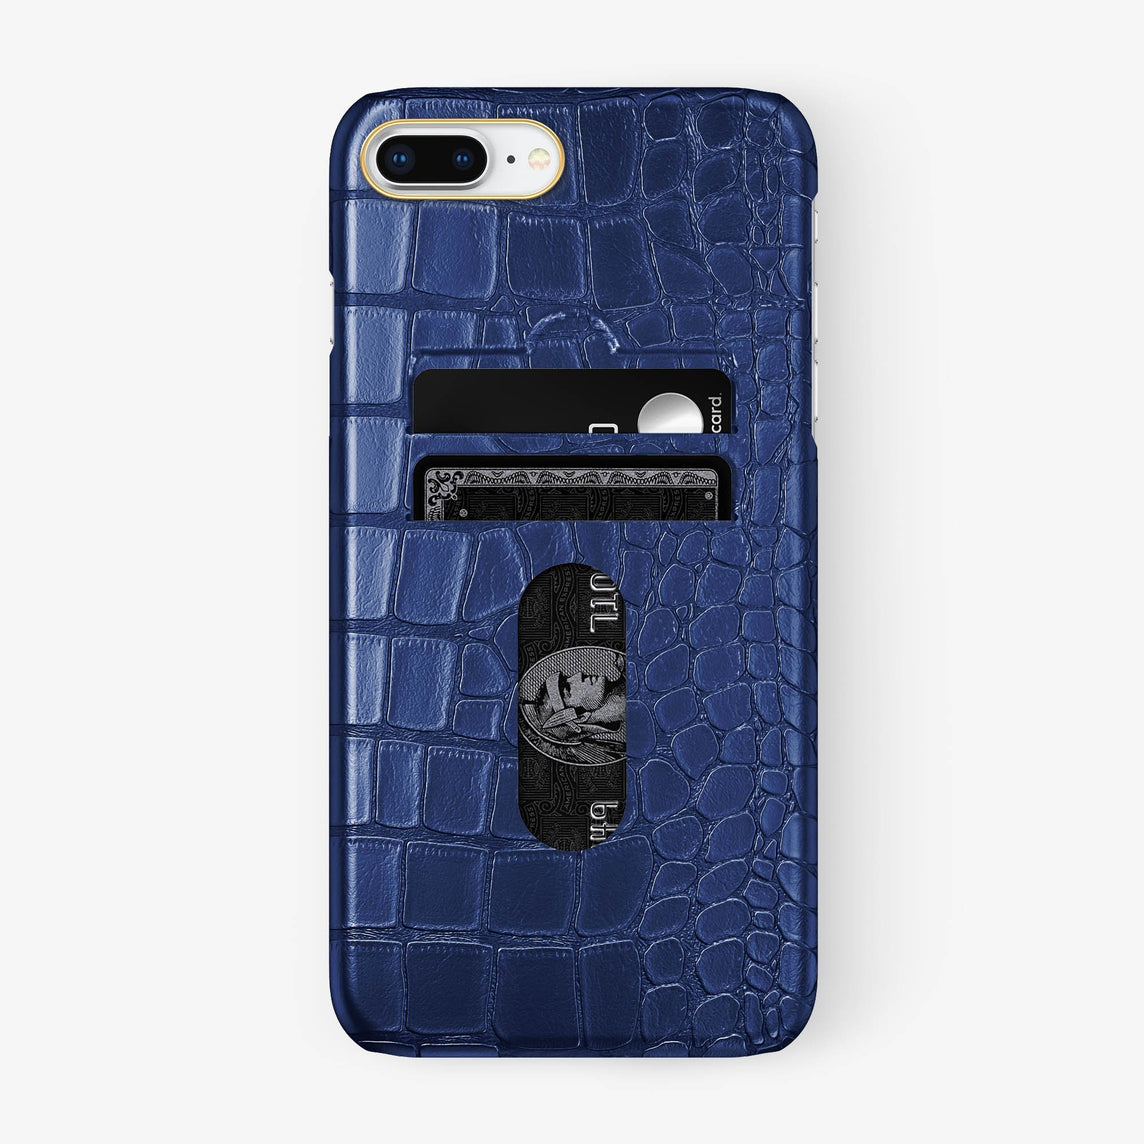 Alligator Card Holder Case iPhone 7/8 Plus | Navy Blue - Yellow Gold - Hadoro